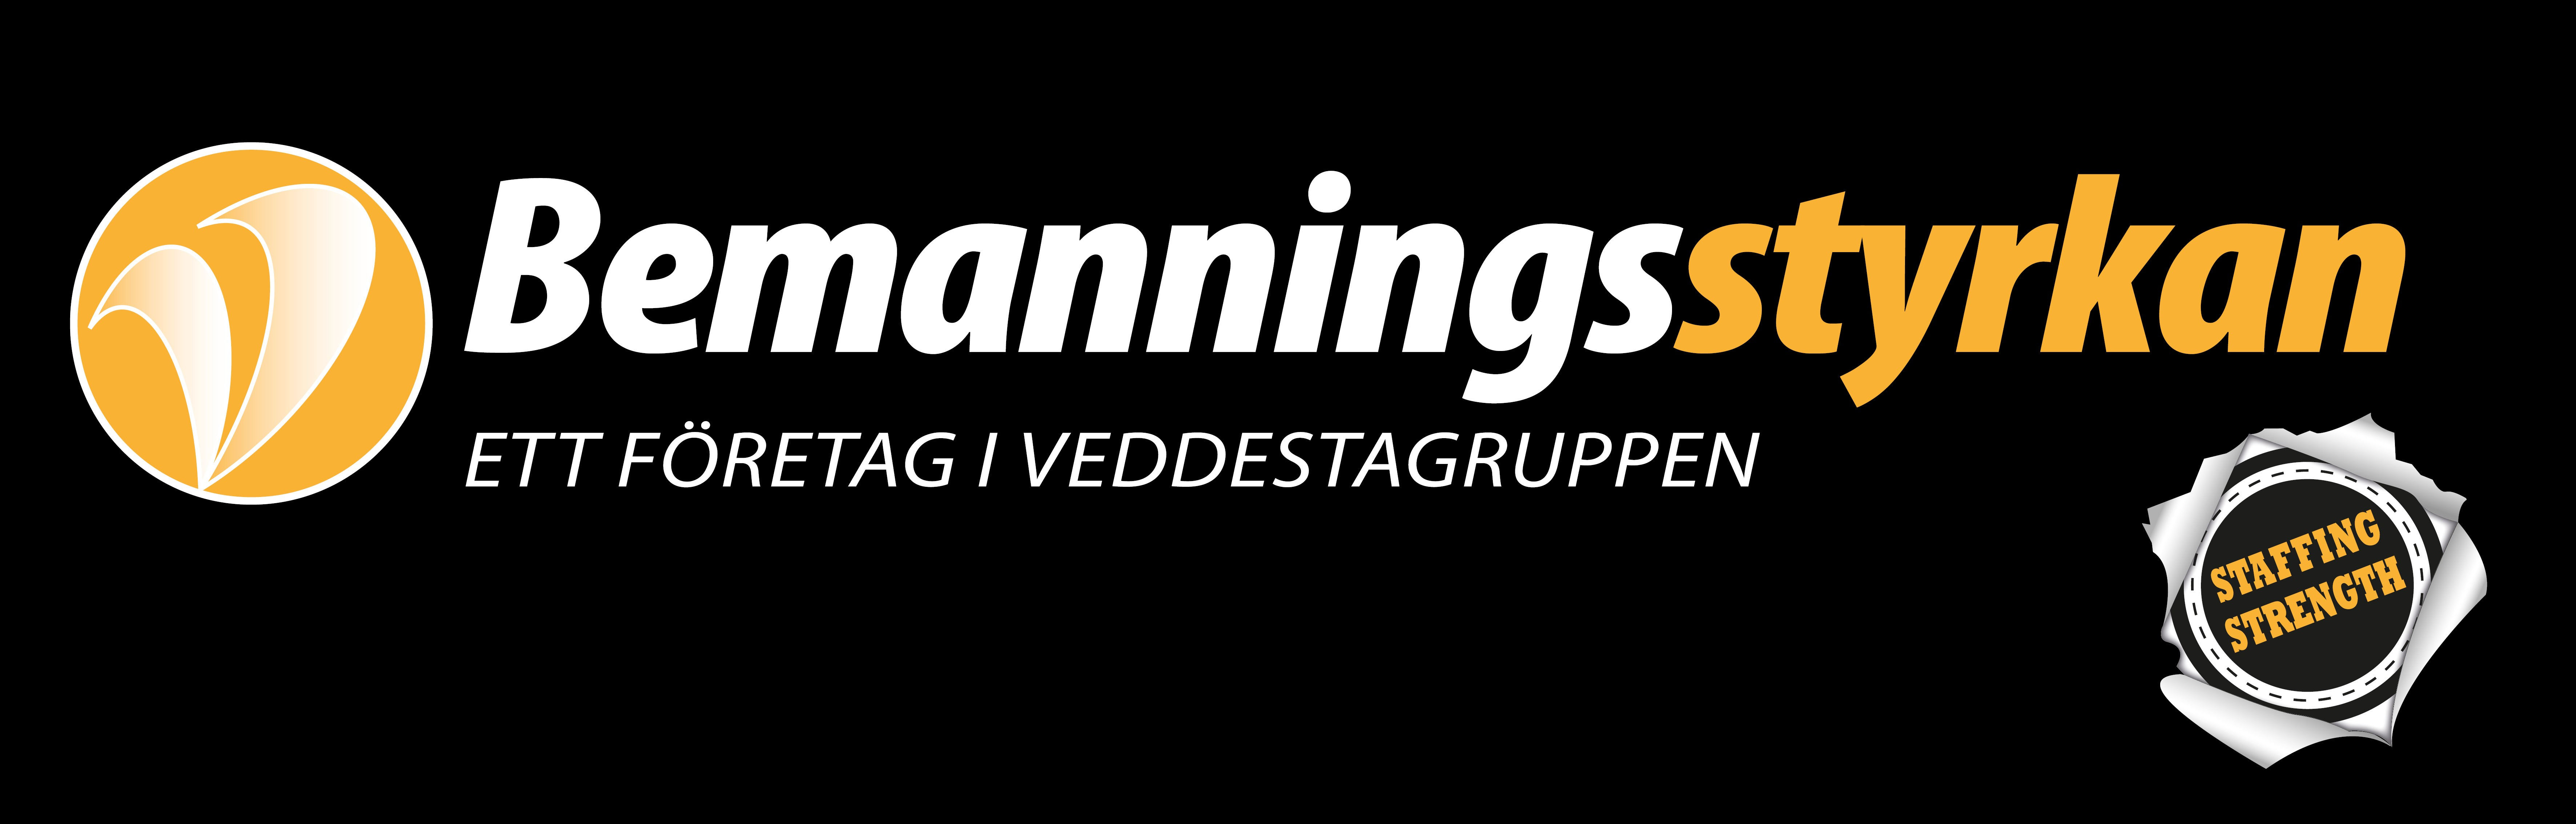 Gay dating-linjer Visings. Gratis gay dejting kina Rosersberg